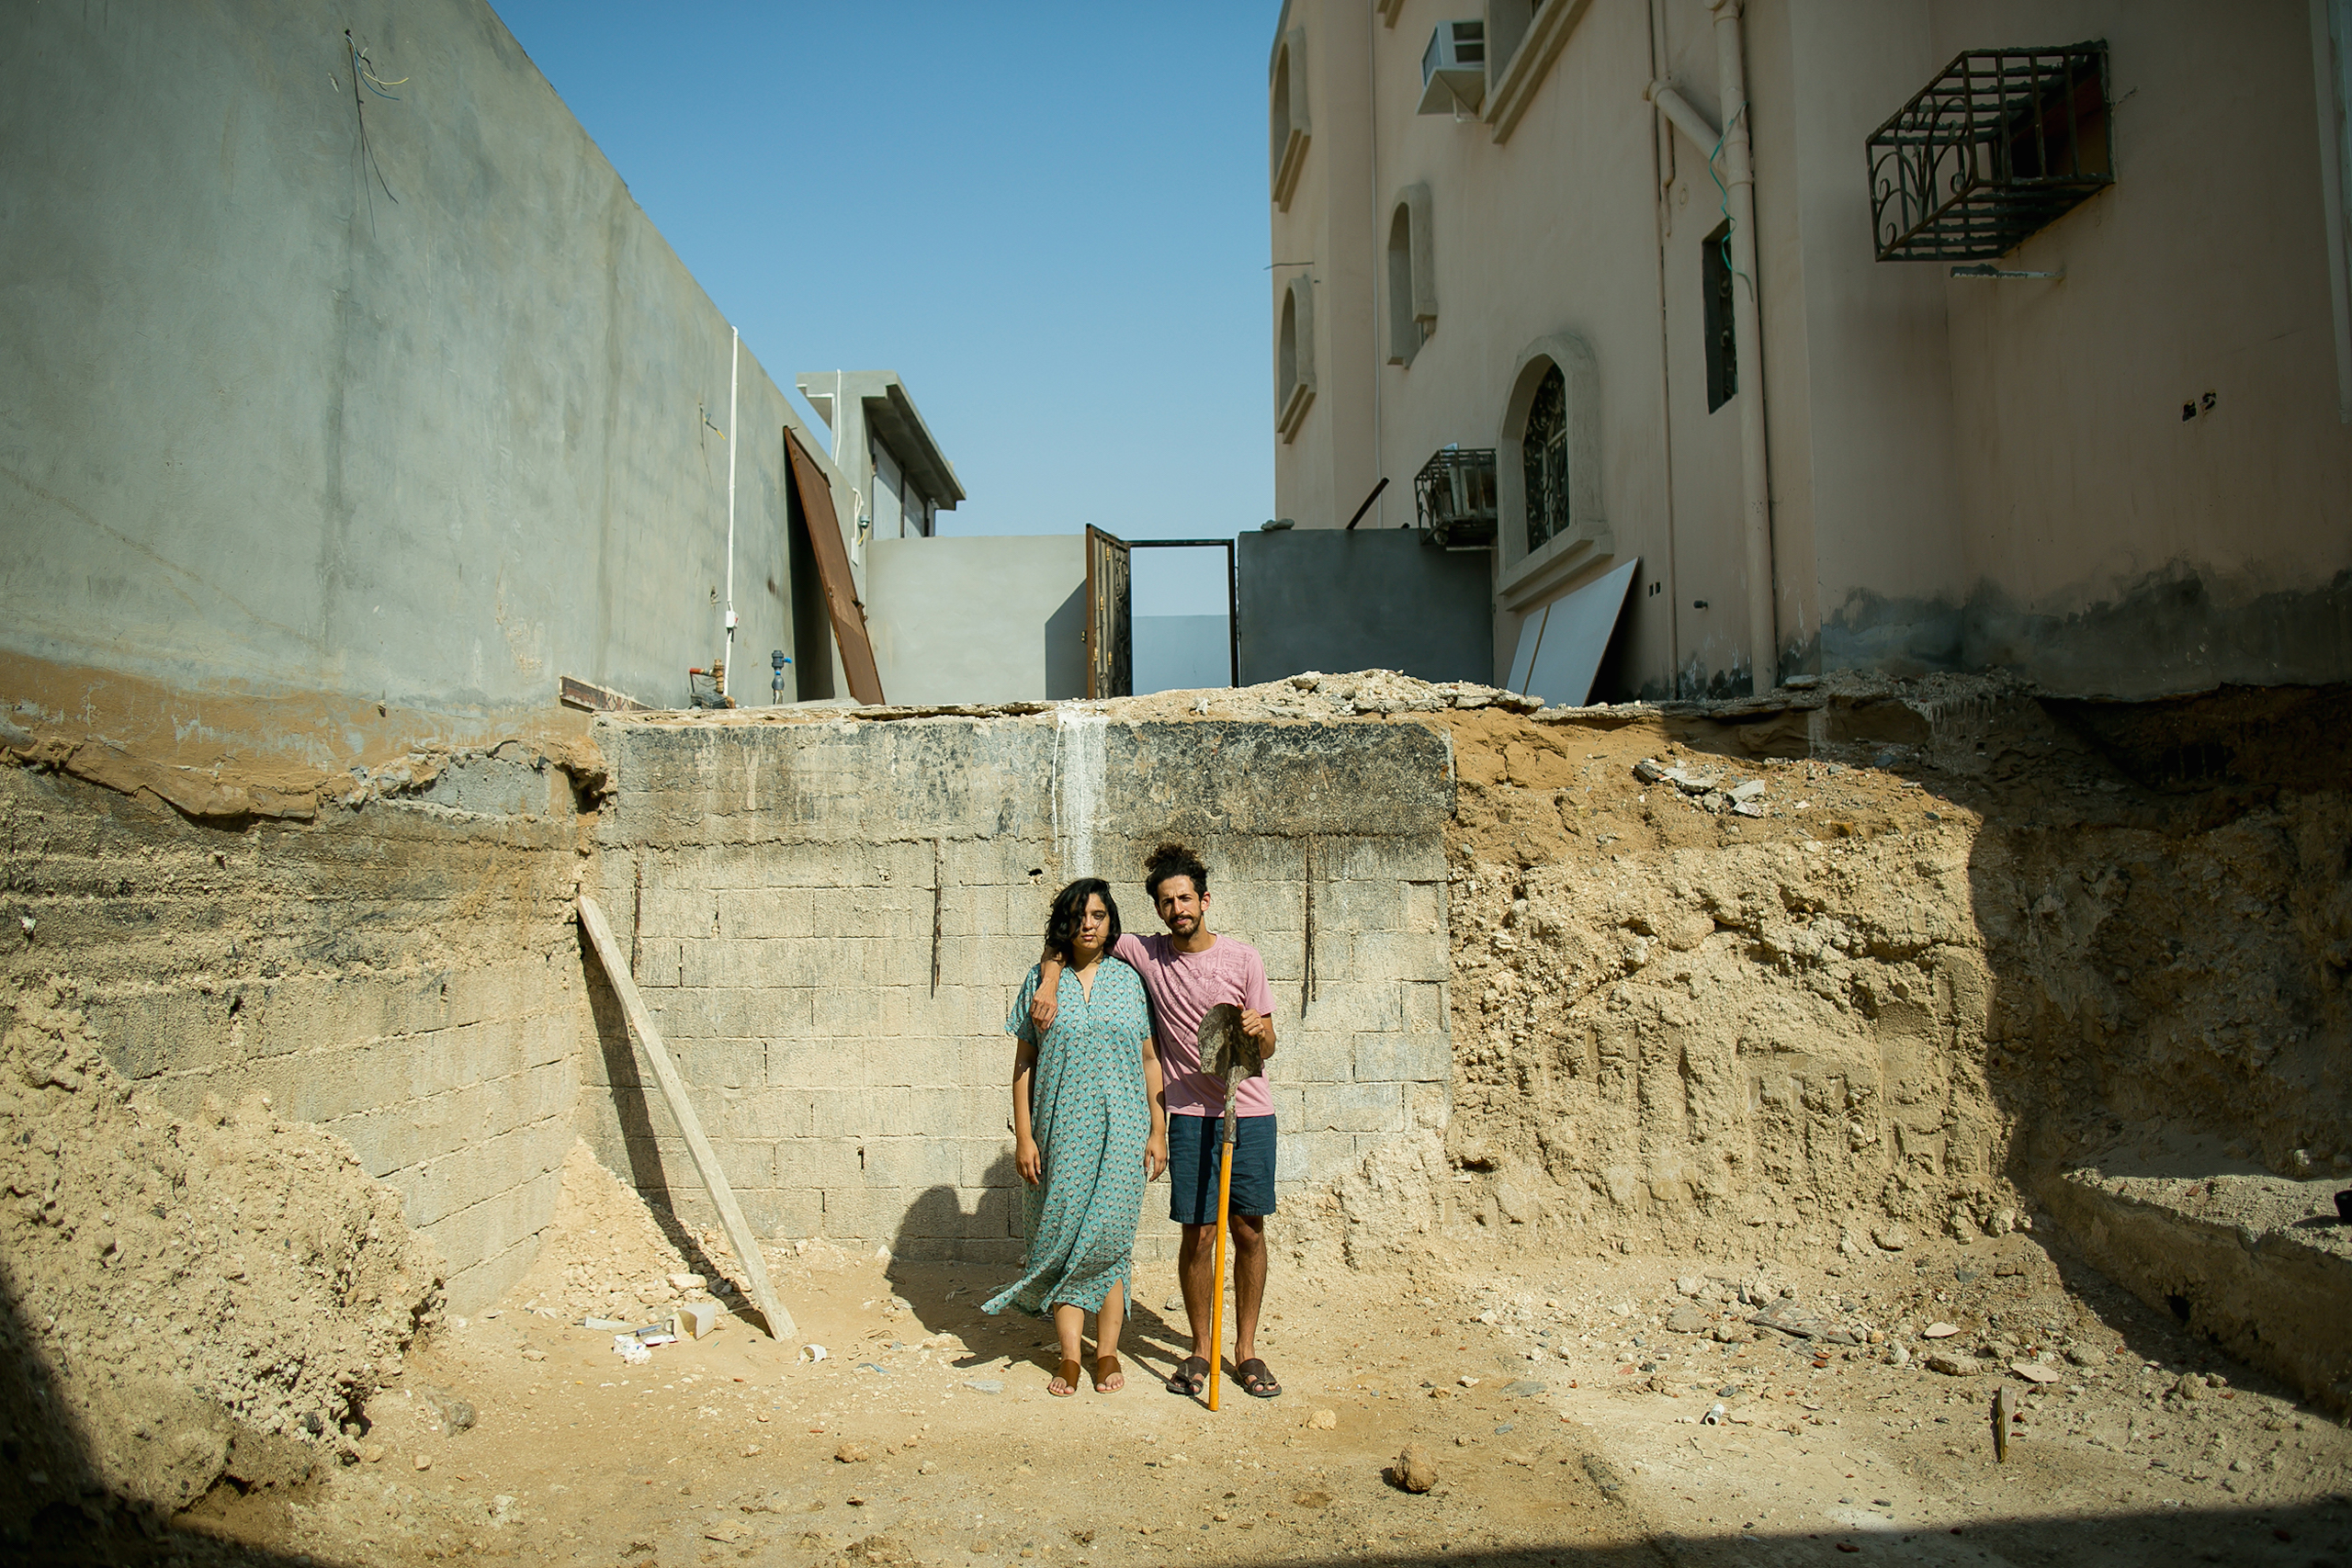 Raneen, an art curator and gallery owner, and Hisham, a comedian and actor, opted for a Saudi-style  American Gothic  portrait in their unfinished swimming pool in Jeddah, December 2015.  I first met her on Twitter, then later in person,  Hisham said.  Wanting nothing but fun, she told me off... I met her again at an ice cream shop. She charmed me with her happy ice cream dance.  Raneen and Hisham were both previously married and divorced. Now married to each other, they realize their past mistakes.  We didn't believe in love, and were too cynical. We also thought of marriage as a duty. After we stopped searching for the one, that's when we met each other,  he said.